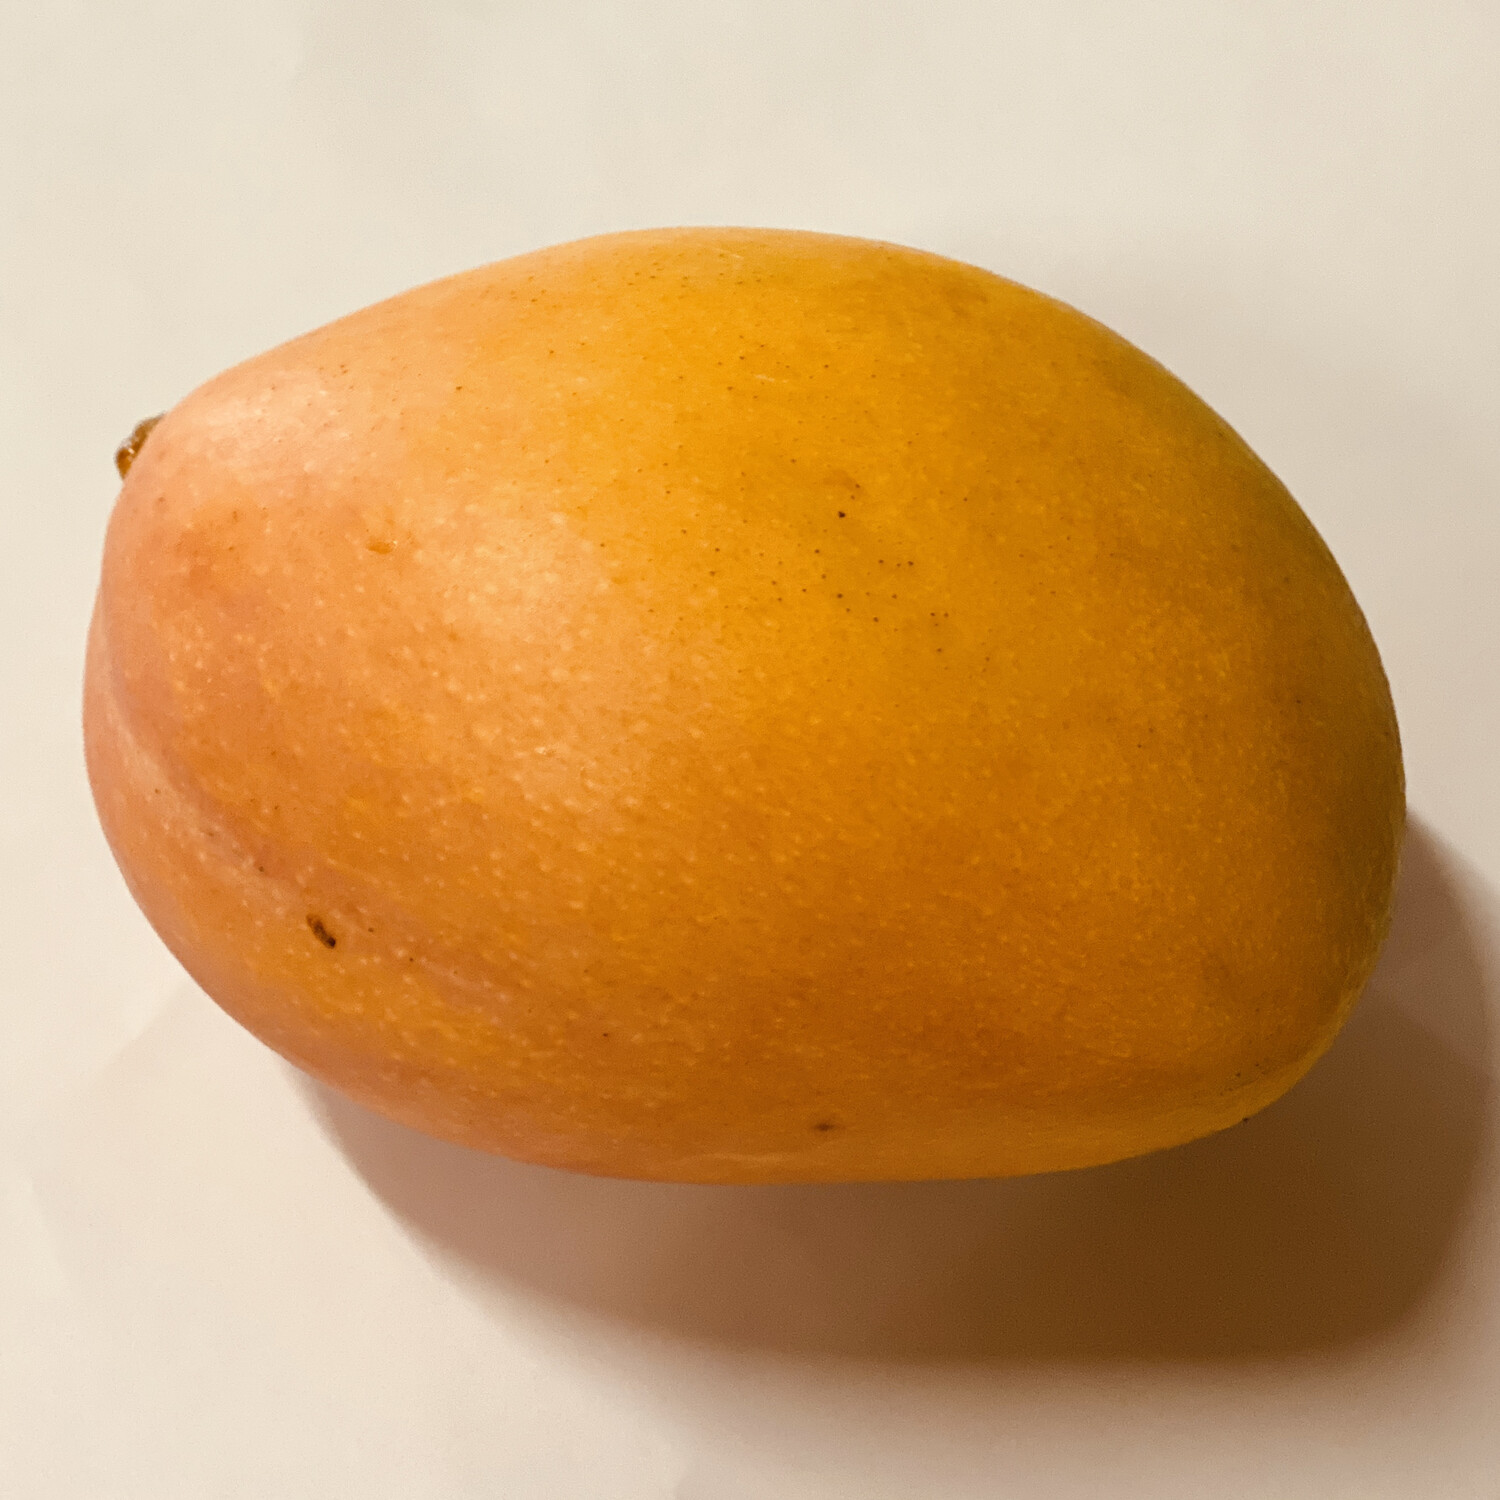 SPECIAL MANGOES 2 FOR $7